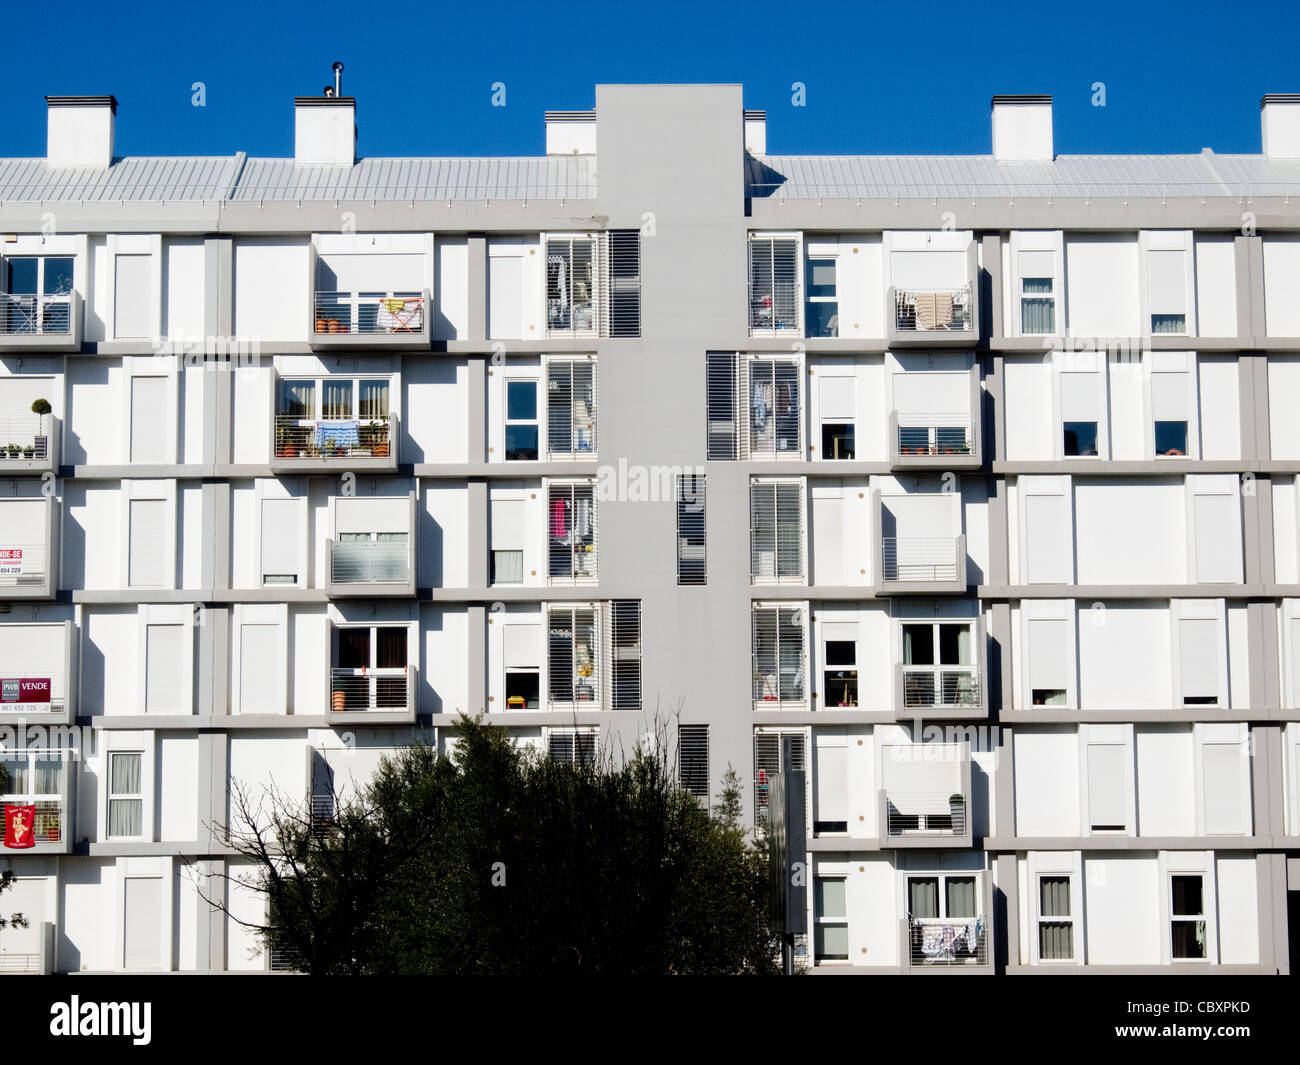 Modern Apartment Building Facade   Stock Image